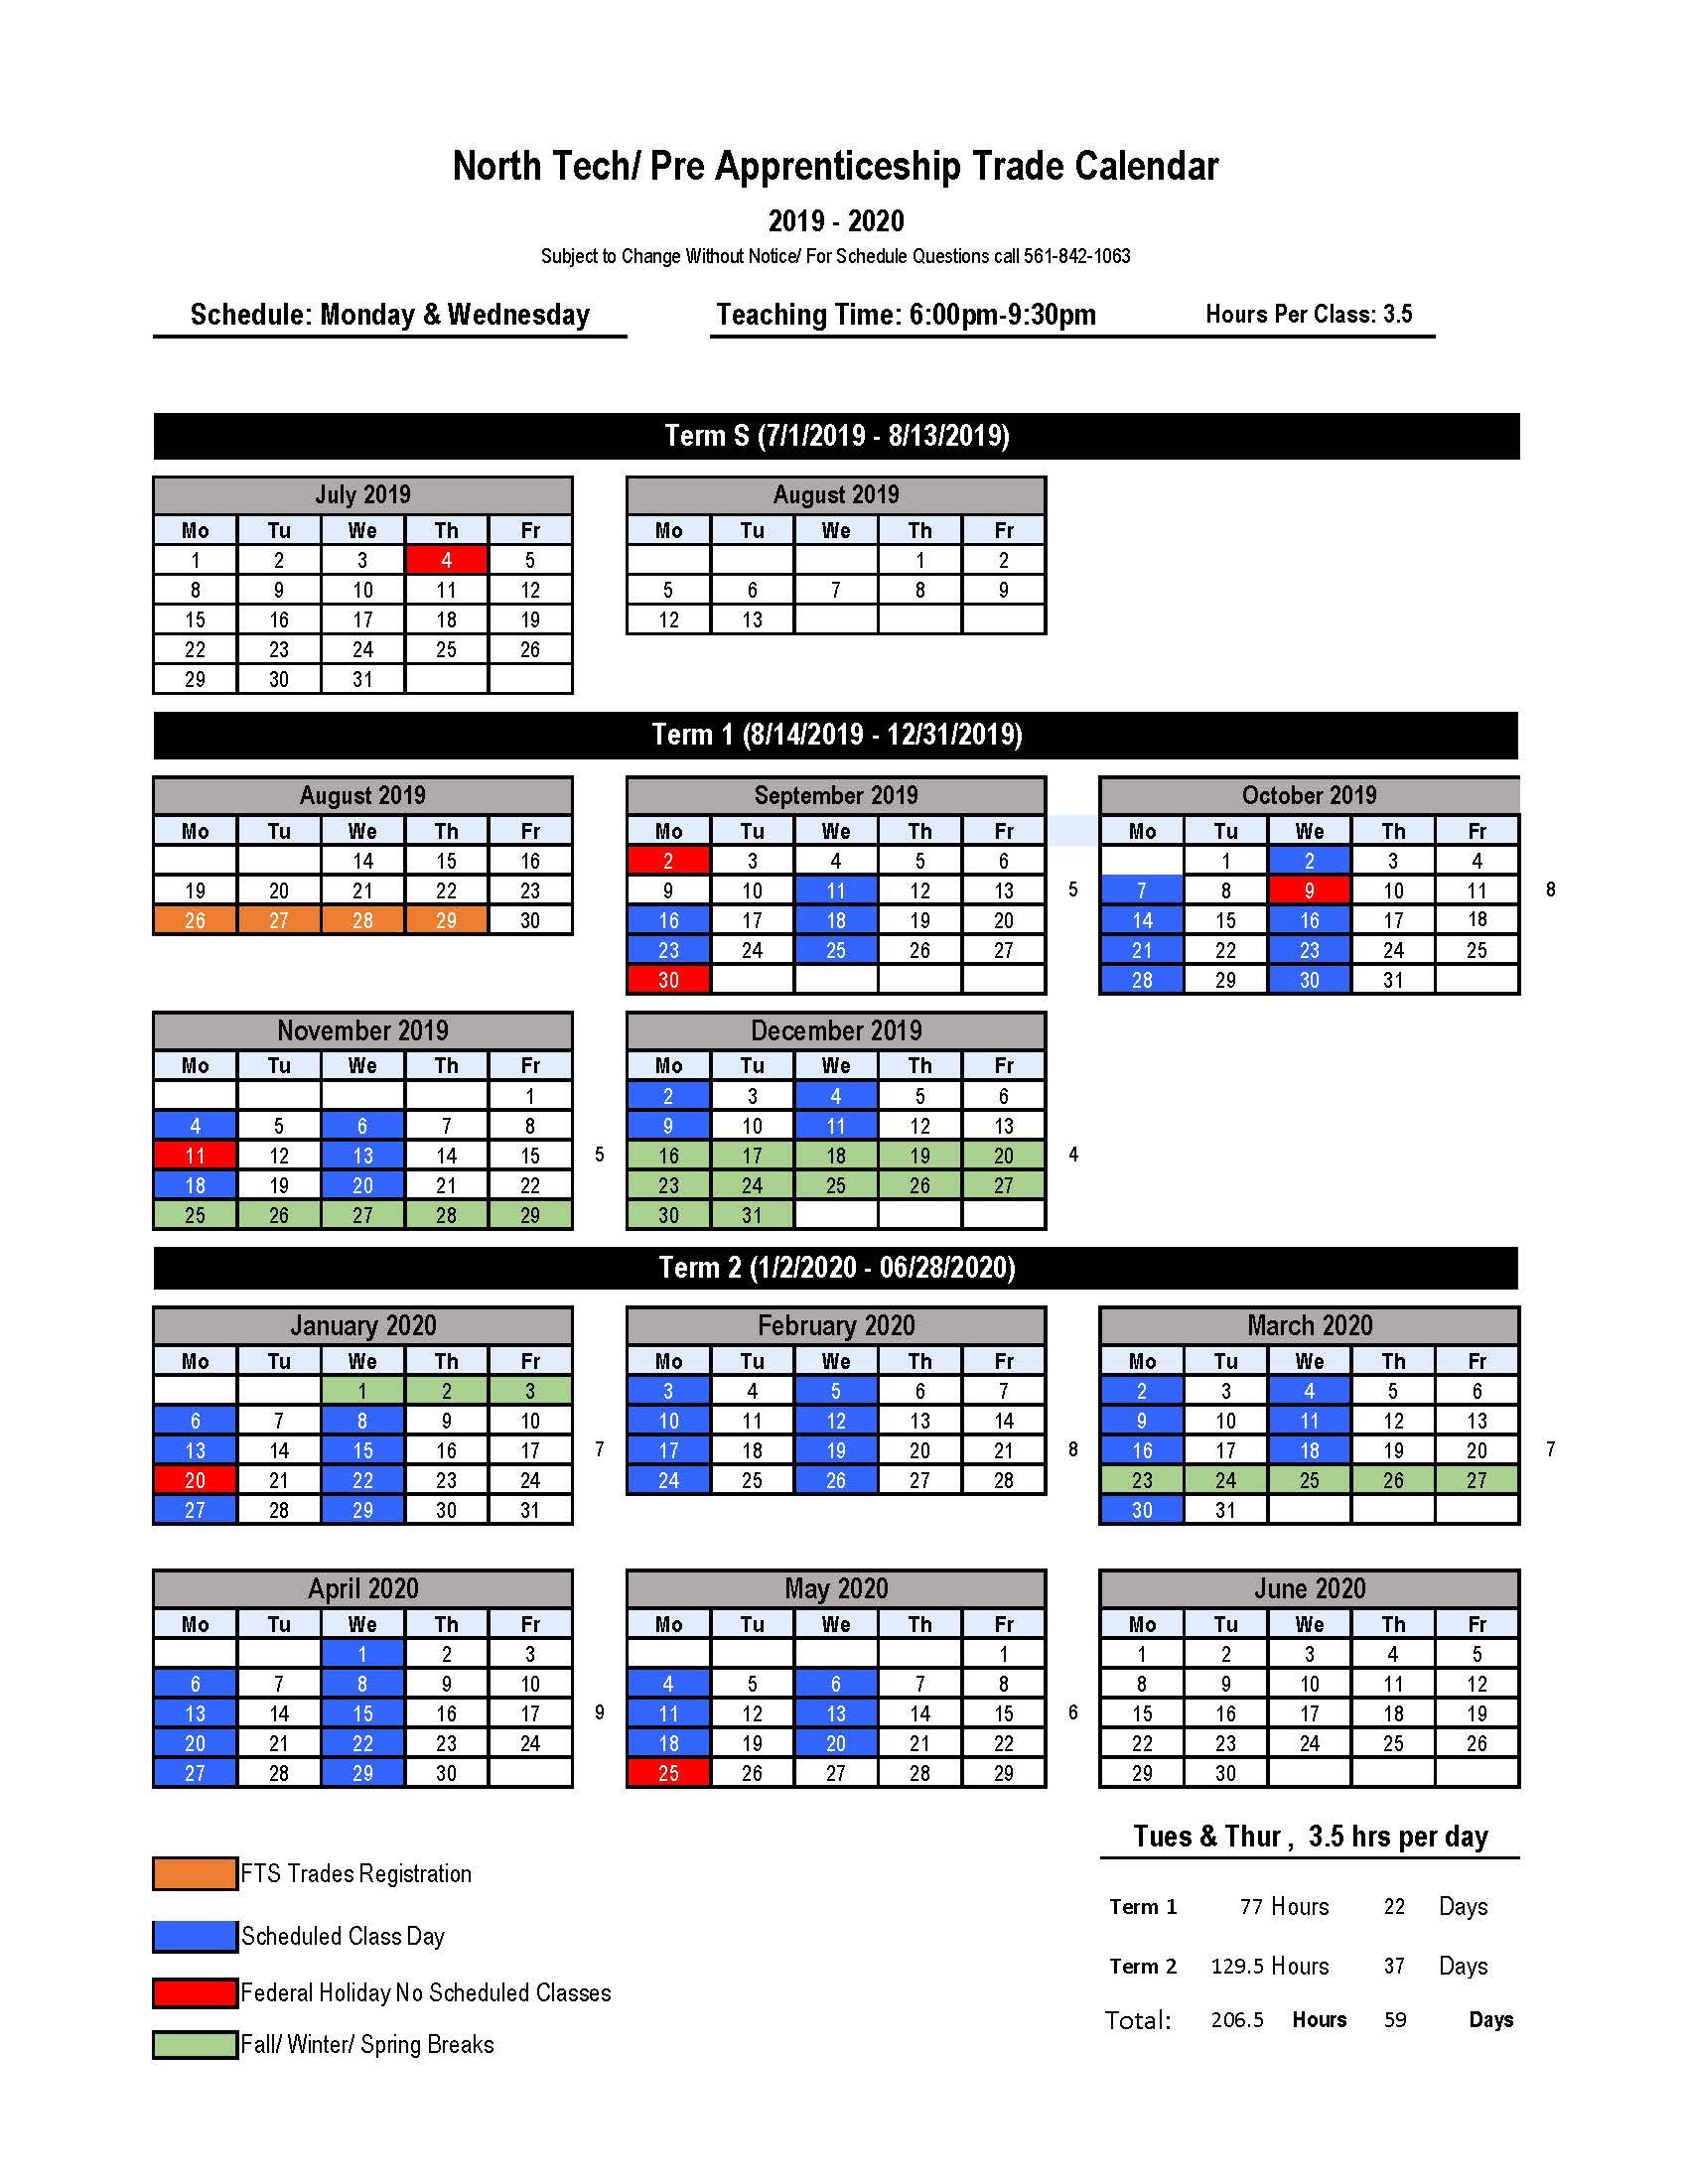 North Tech 2019-2020 Calendar